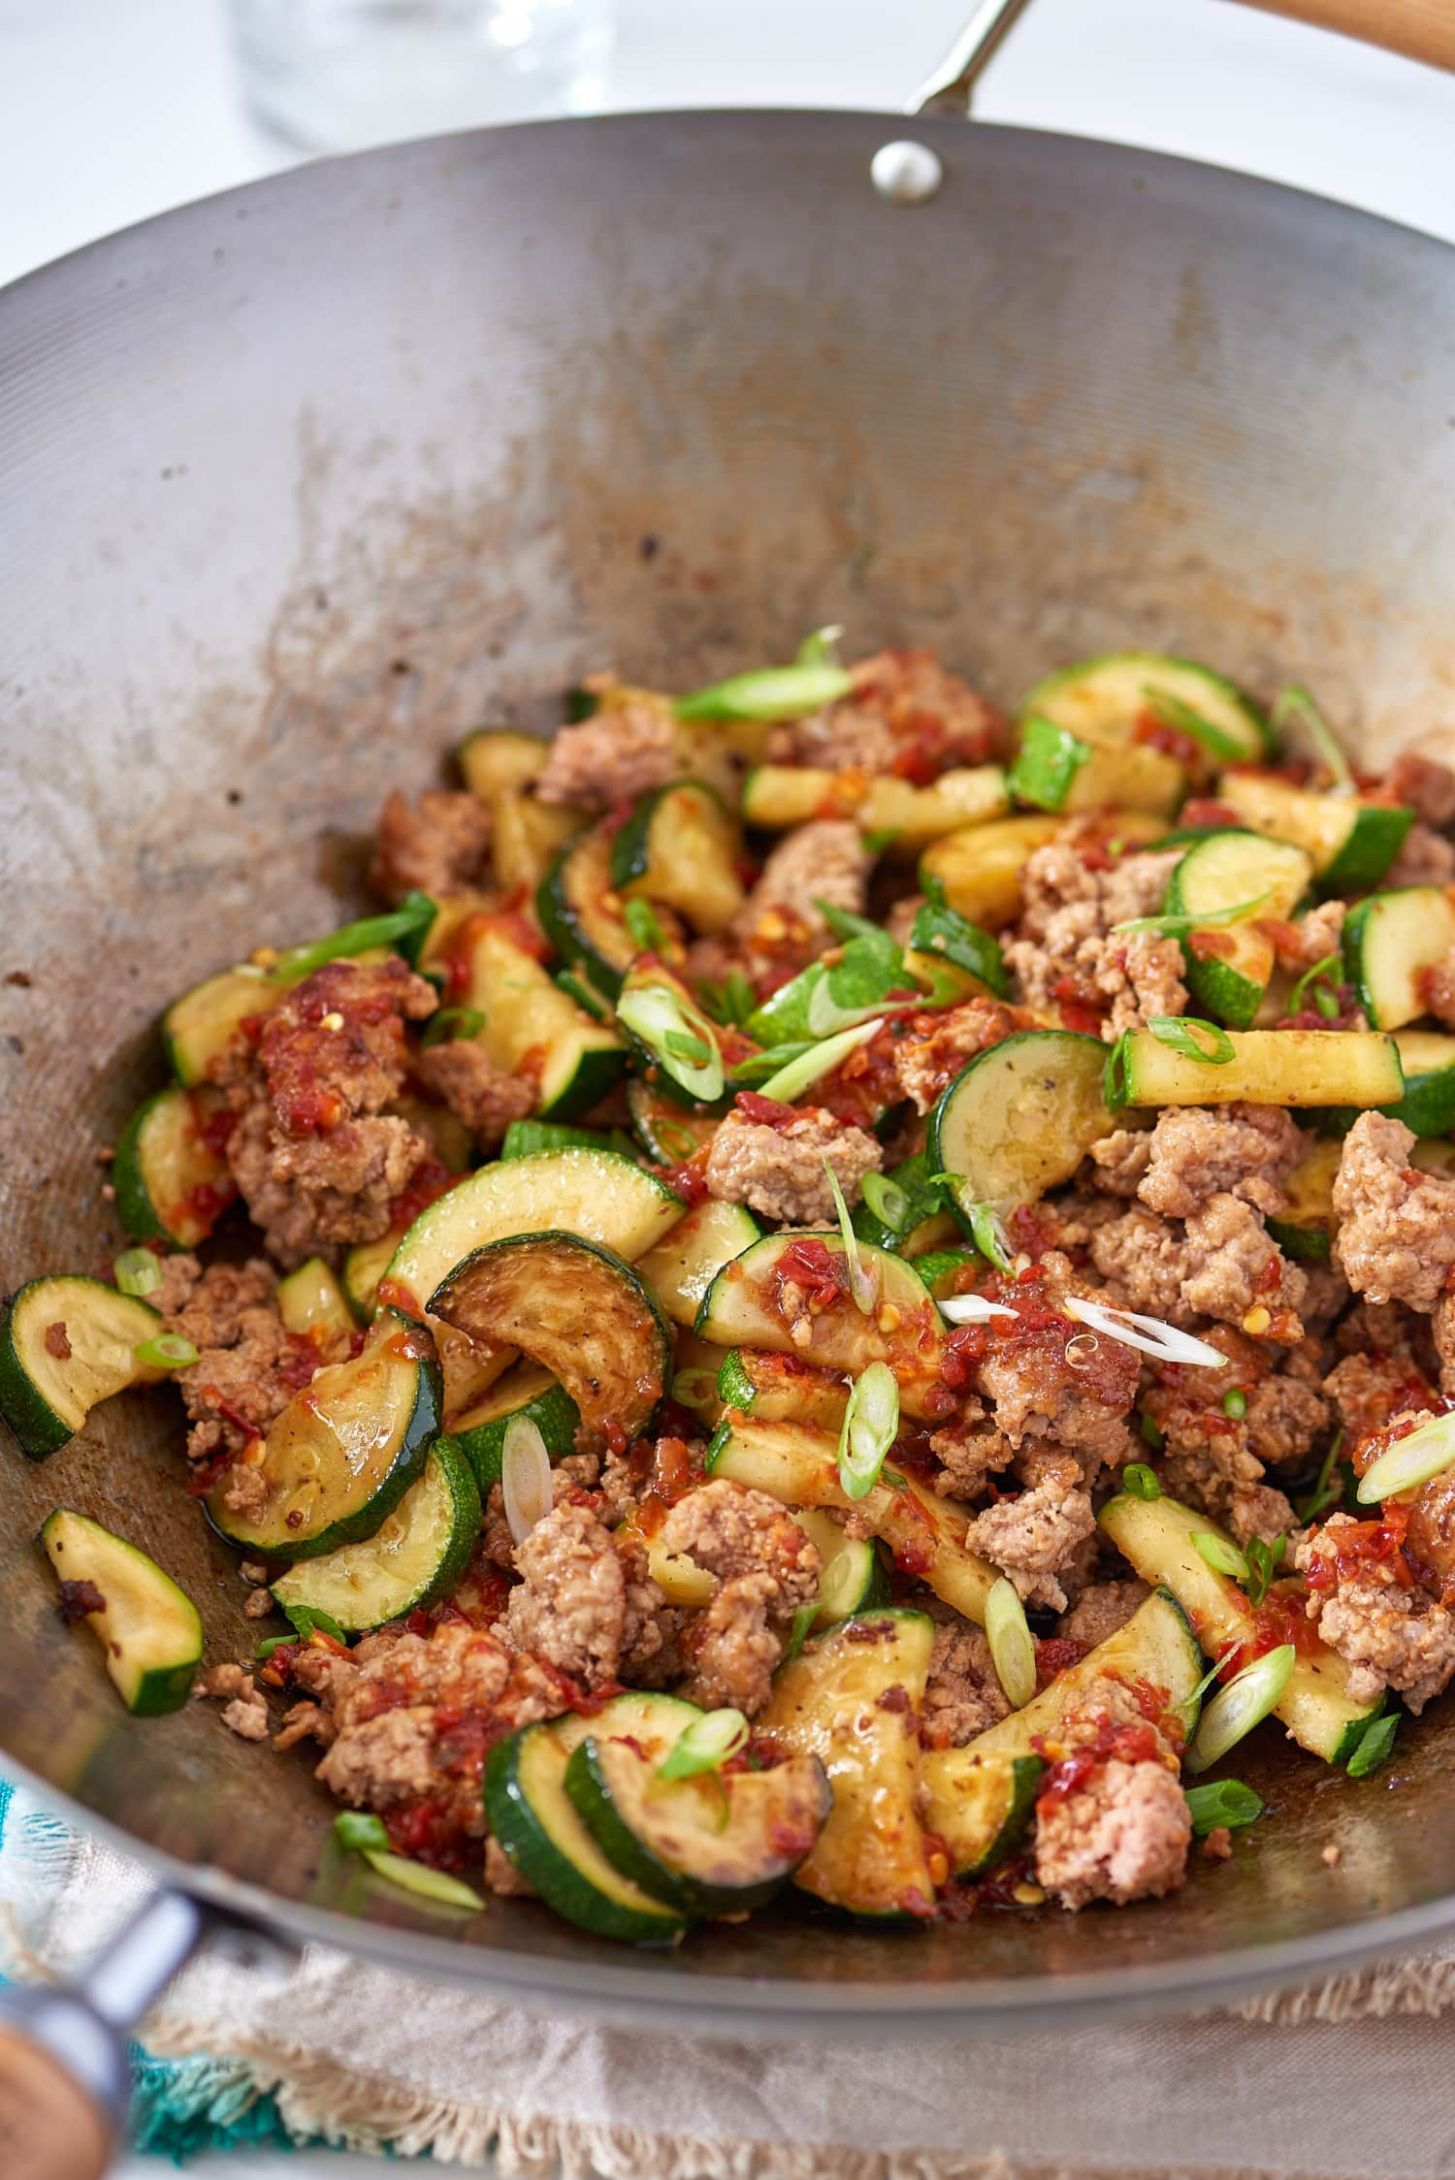 Spicy Ground Pork & Zucchini Stir-Fry - Recipe Pork Zucchini